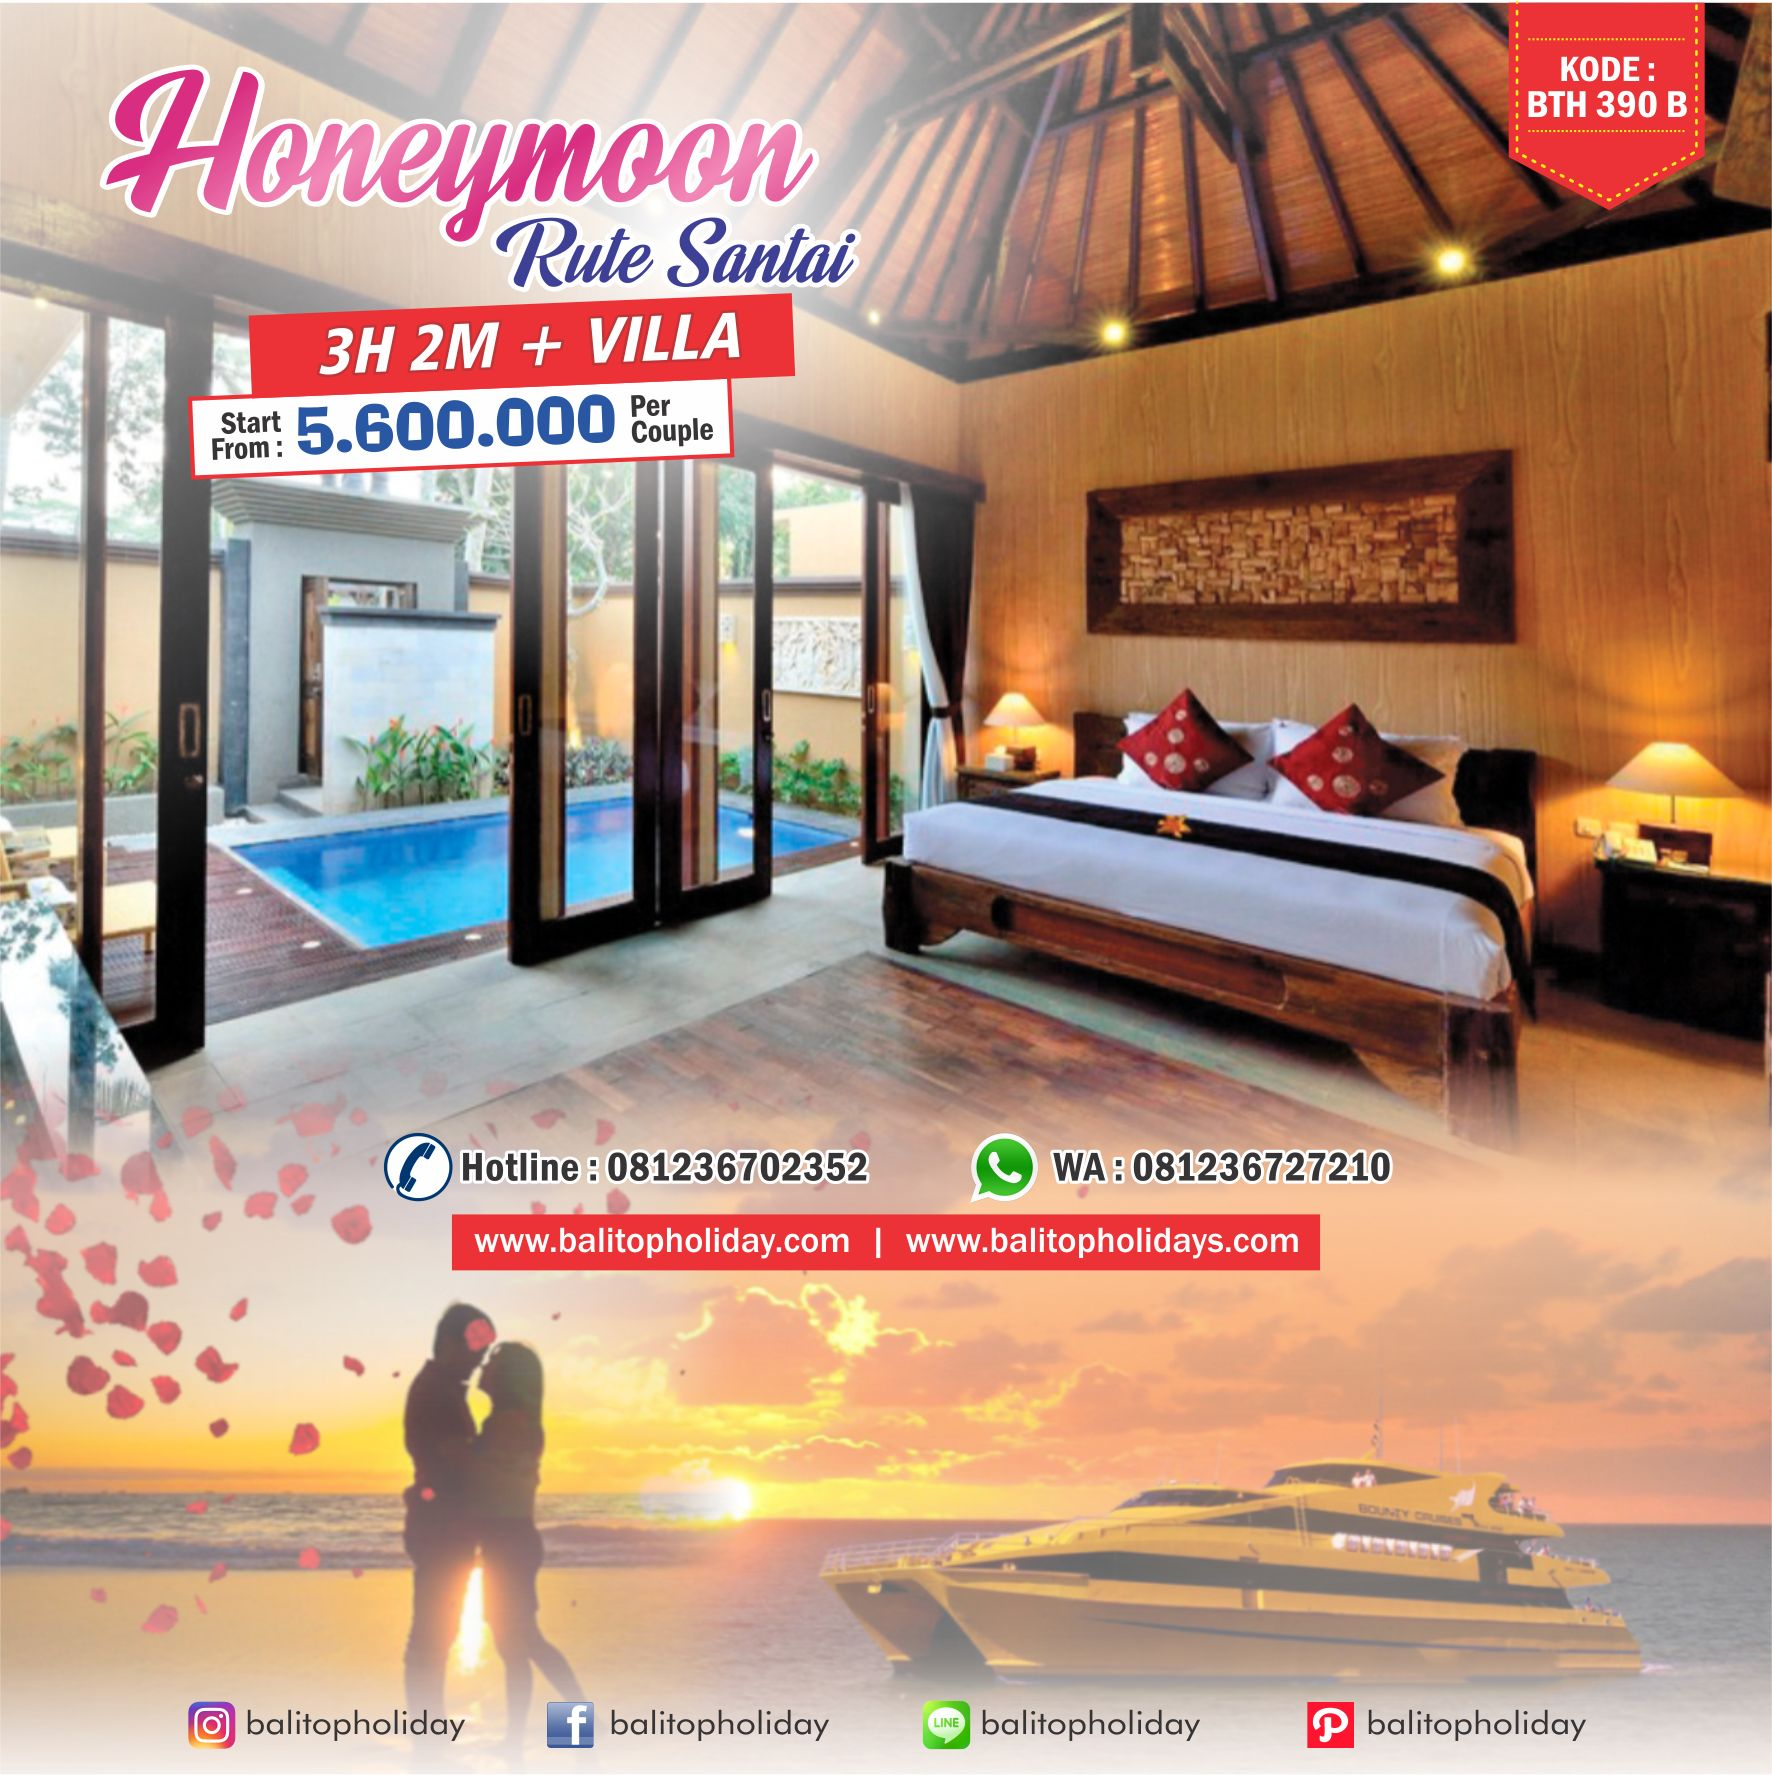 PAKET HONEYMOON BALI VILLA